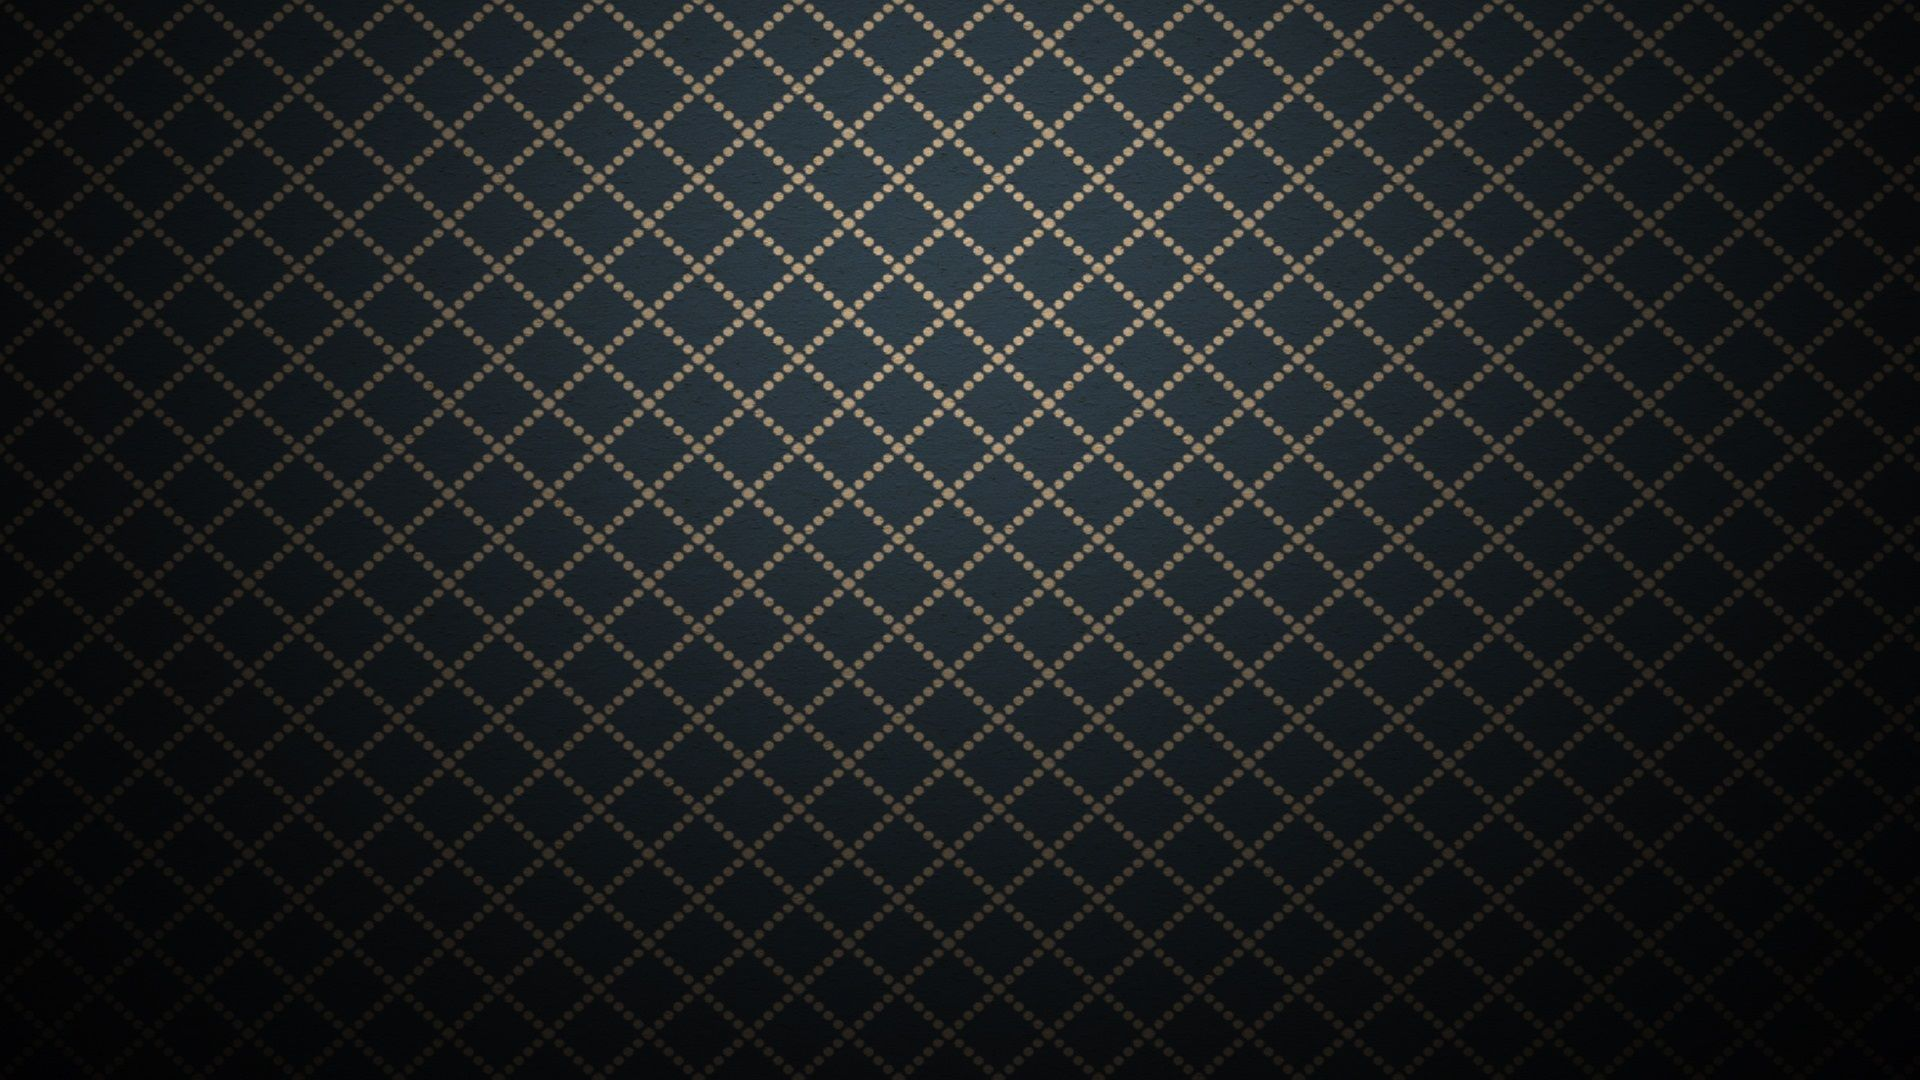 Darkness Wallpaper Black Background Full Hd Abstract High Resolution Darkness Wallpaper Black Background F Pattern Wallpaper Textured Wallpaper Plaid Wallpaper